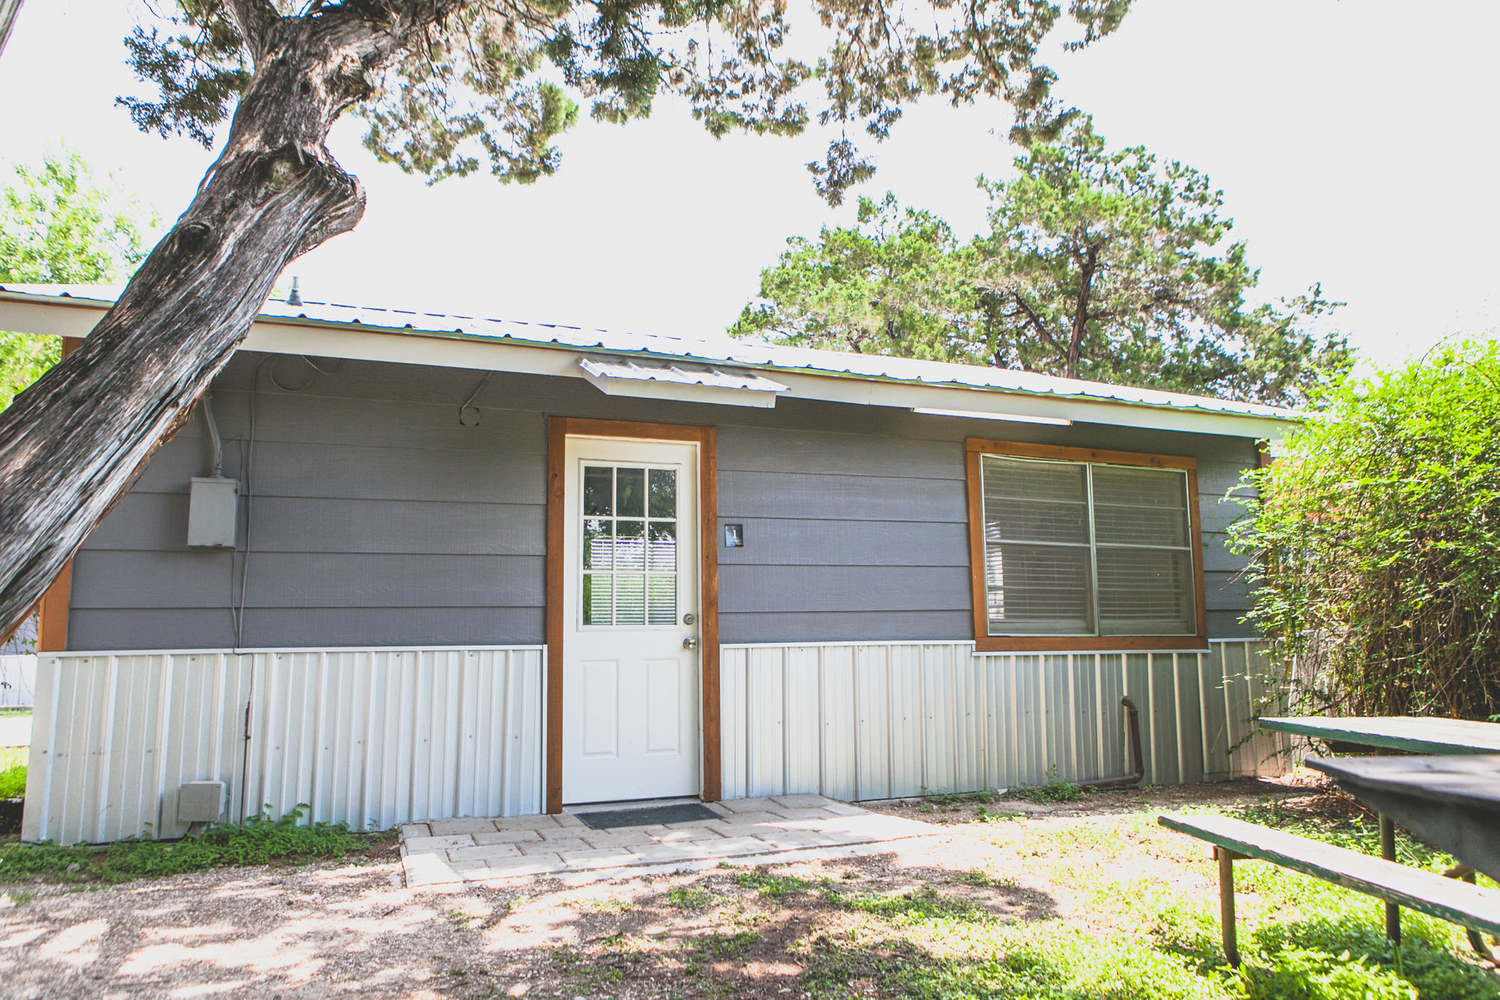 Camping Cabin in Texas Hill Country